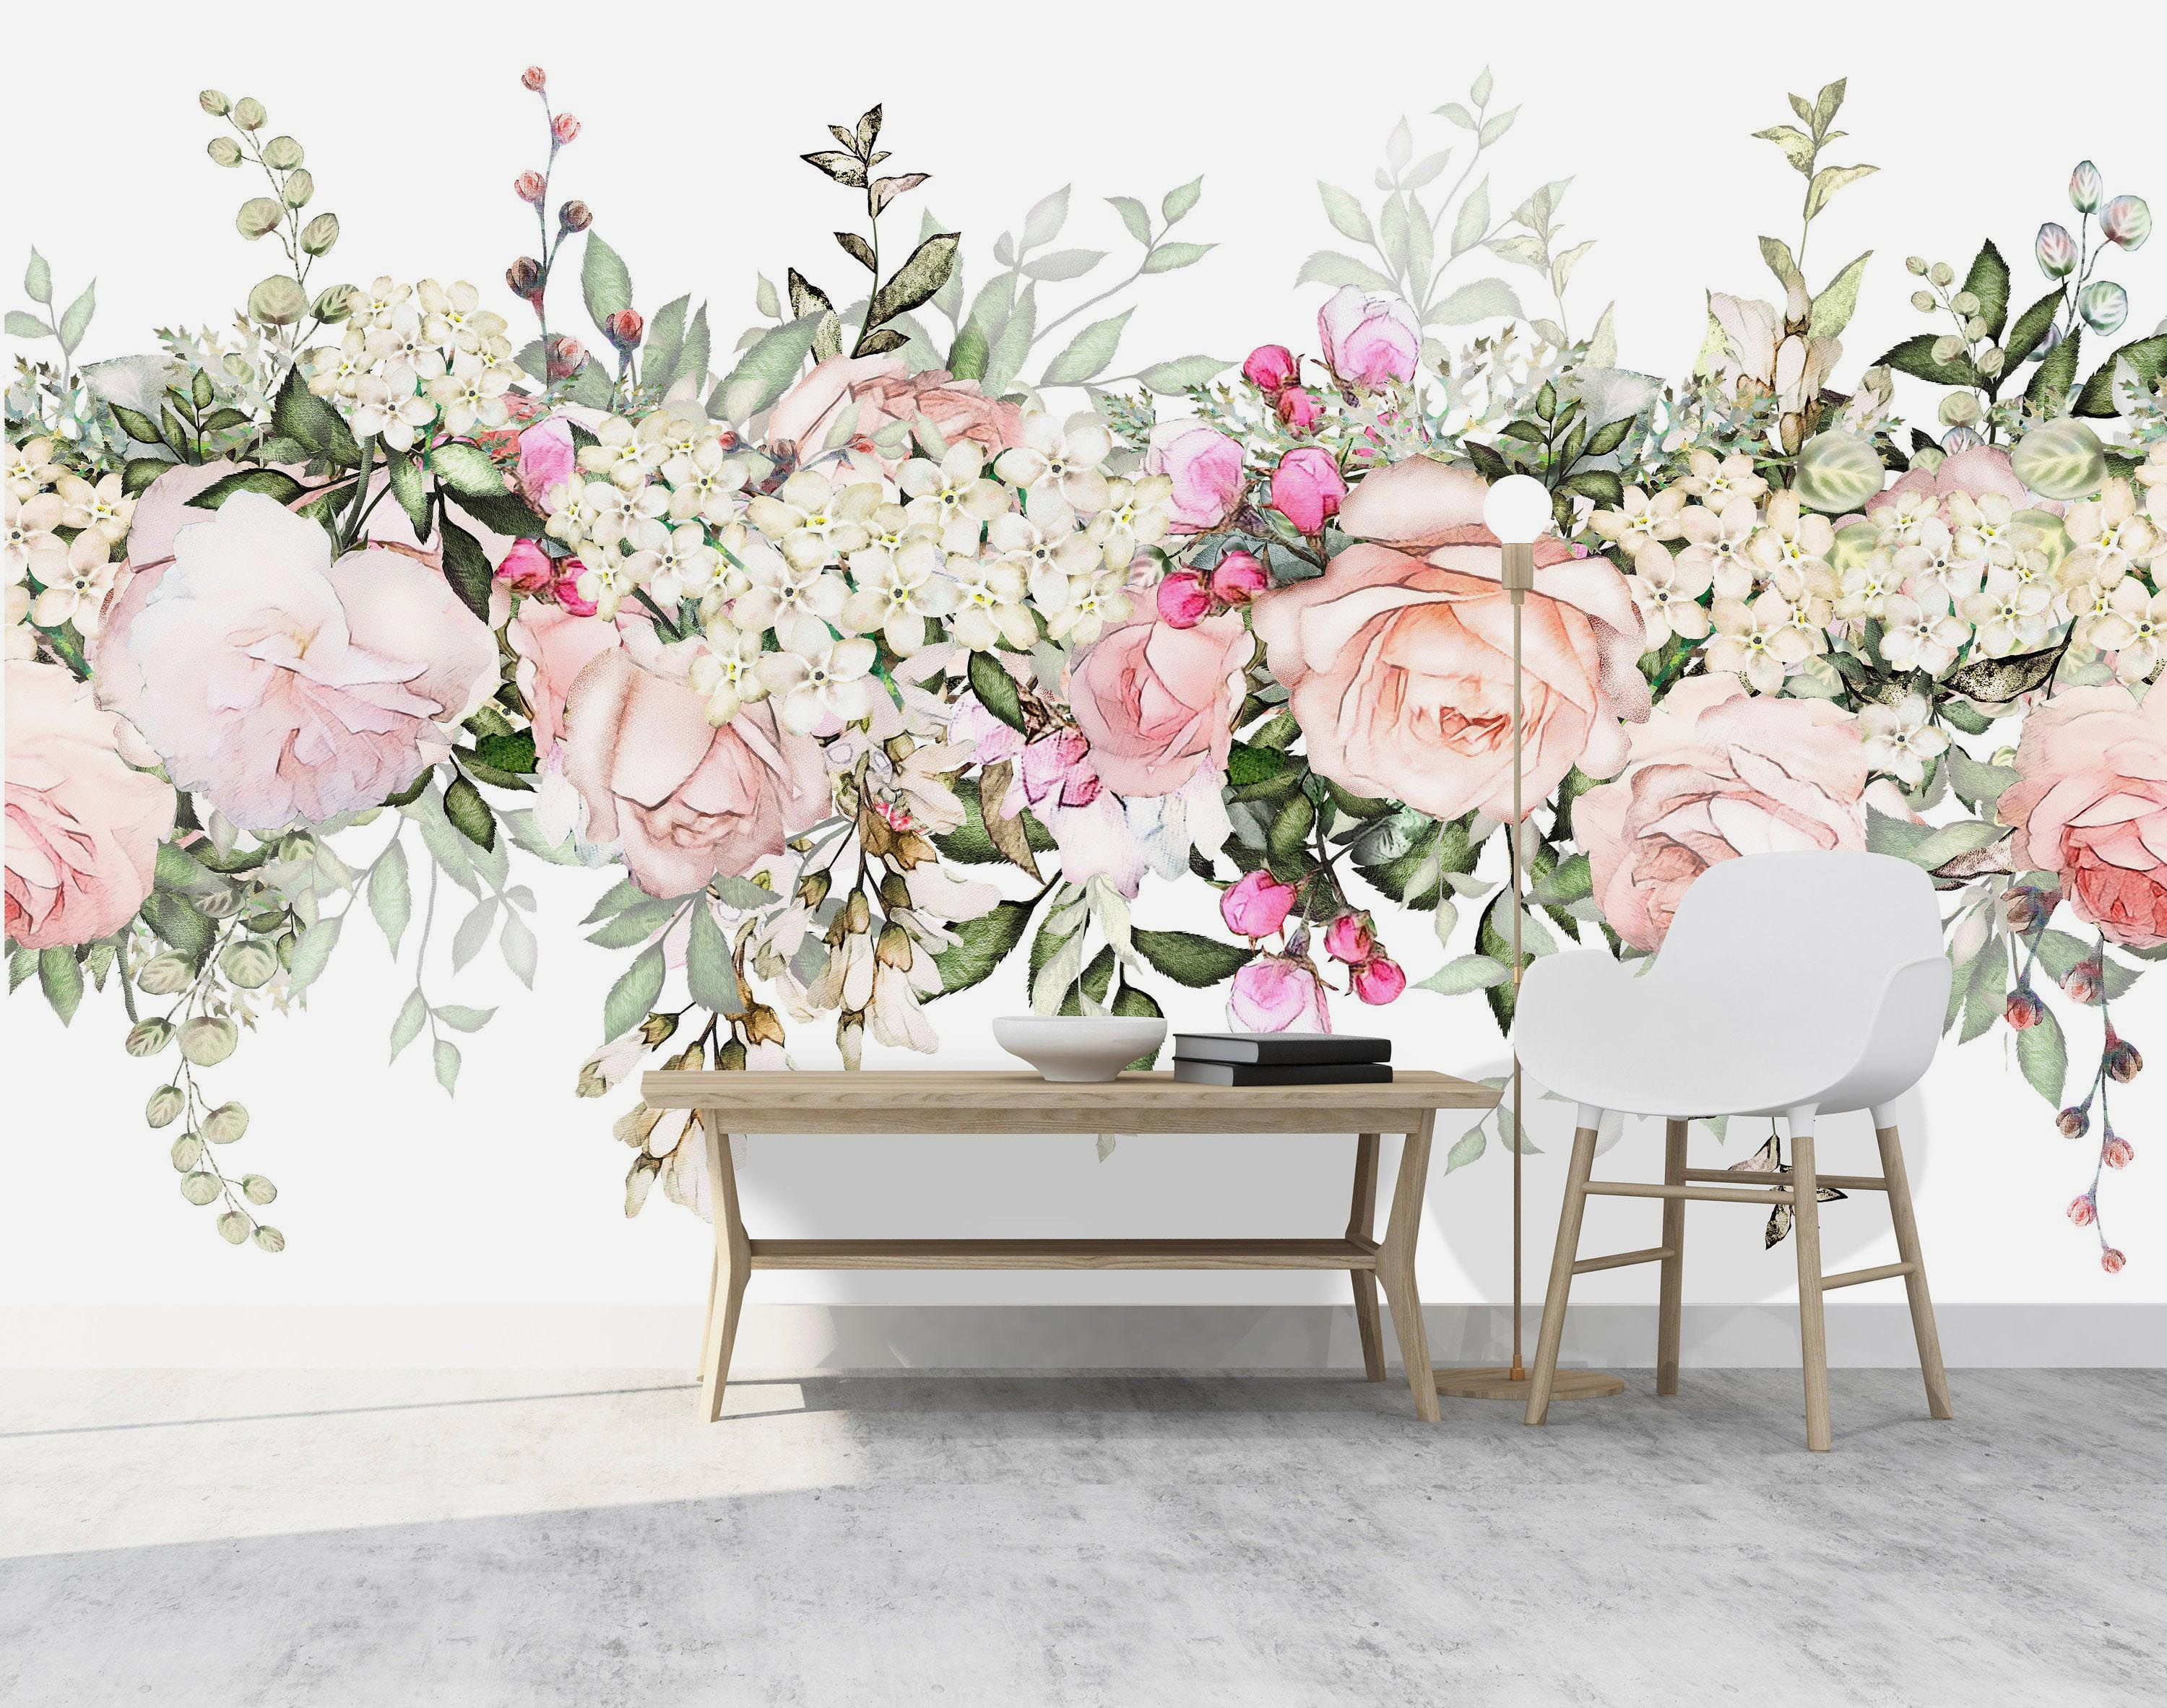 Removable Large Watercolor Floral Mural Wallpaper Removable